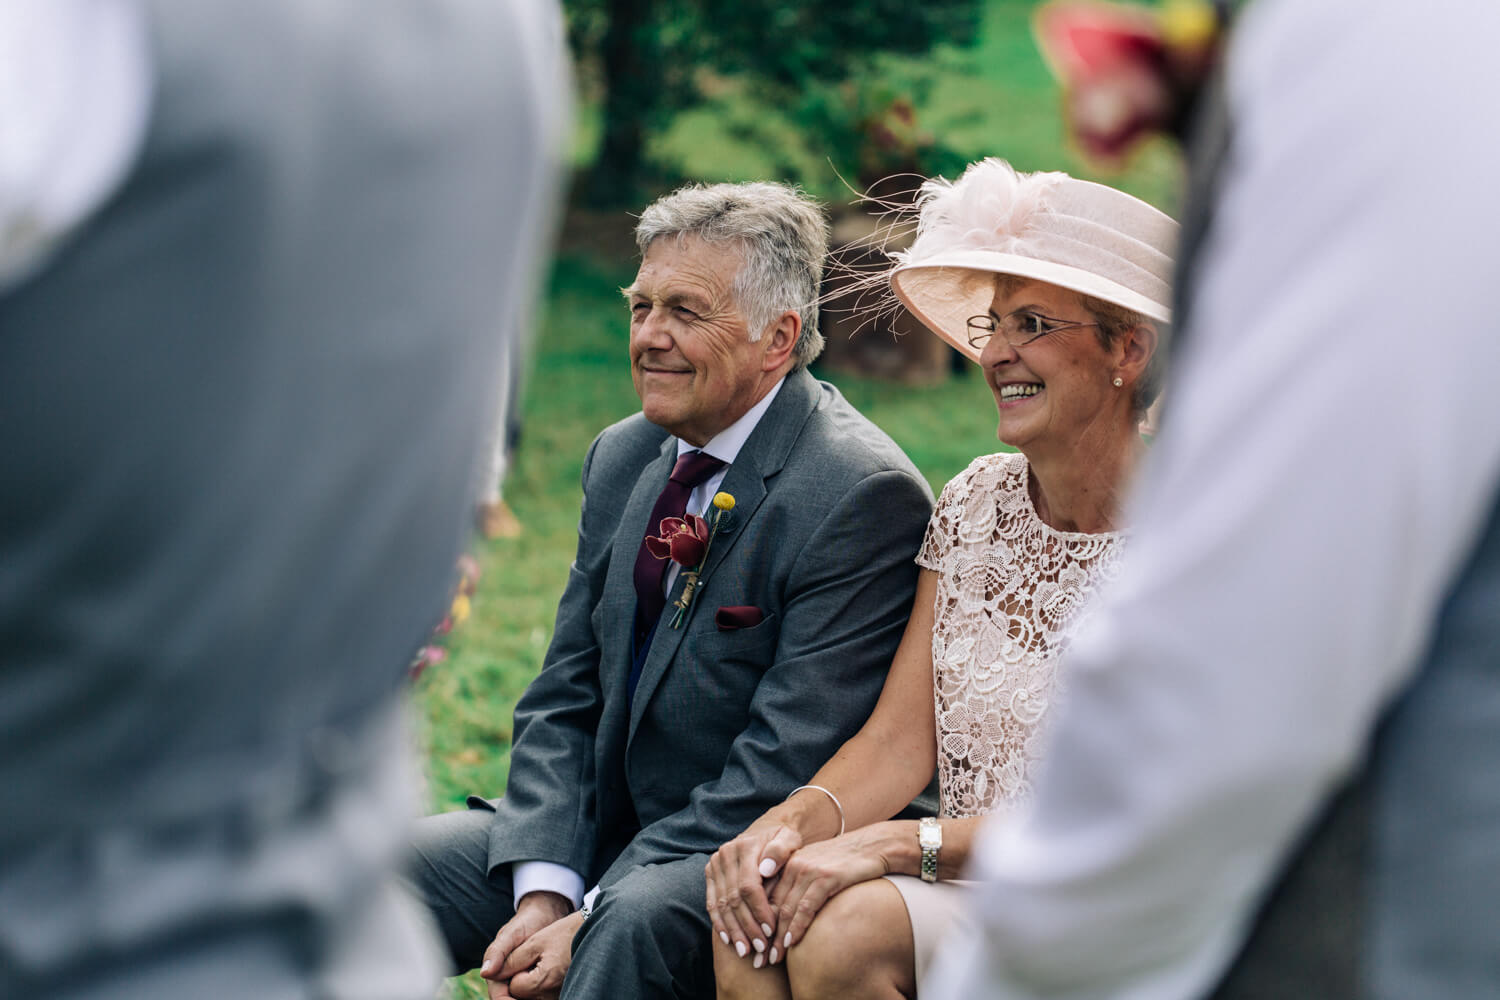 hunter valley wedding photographer mum and dad watch as bride and groom get married